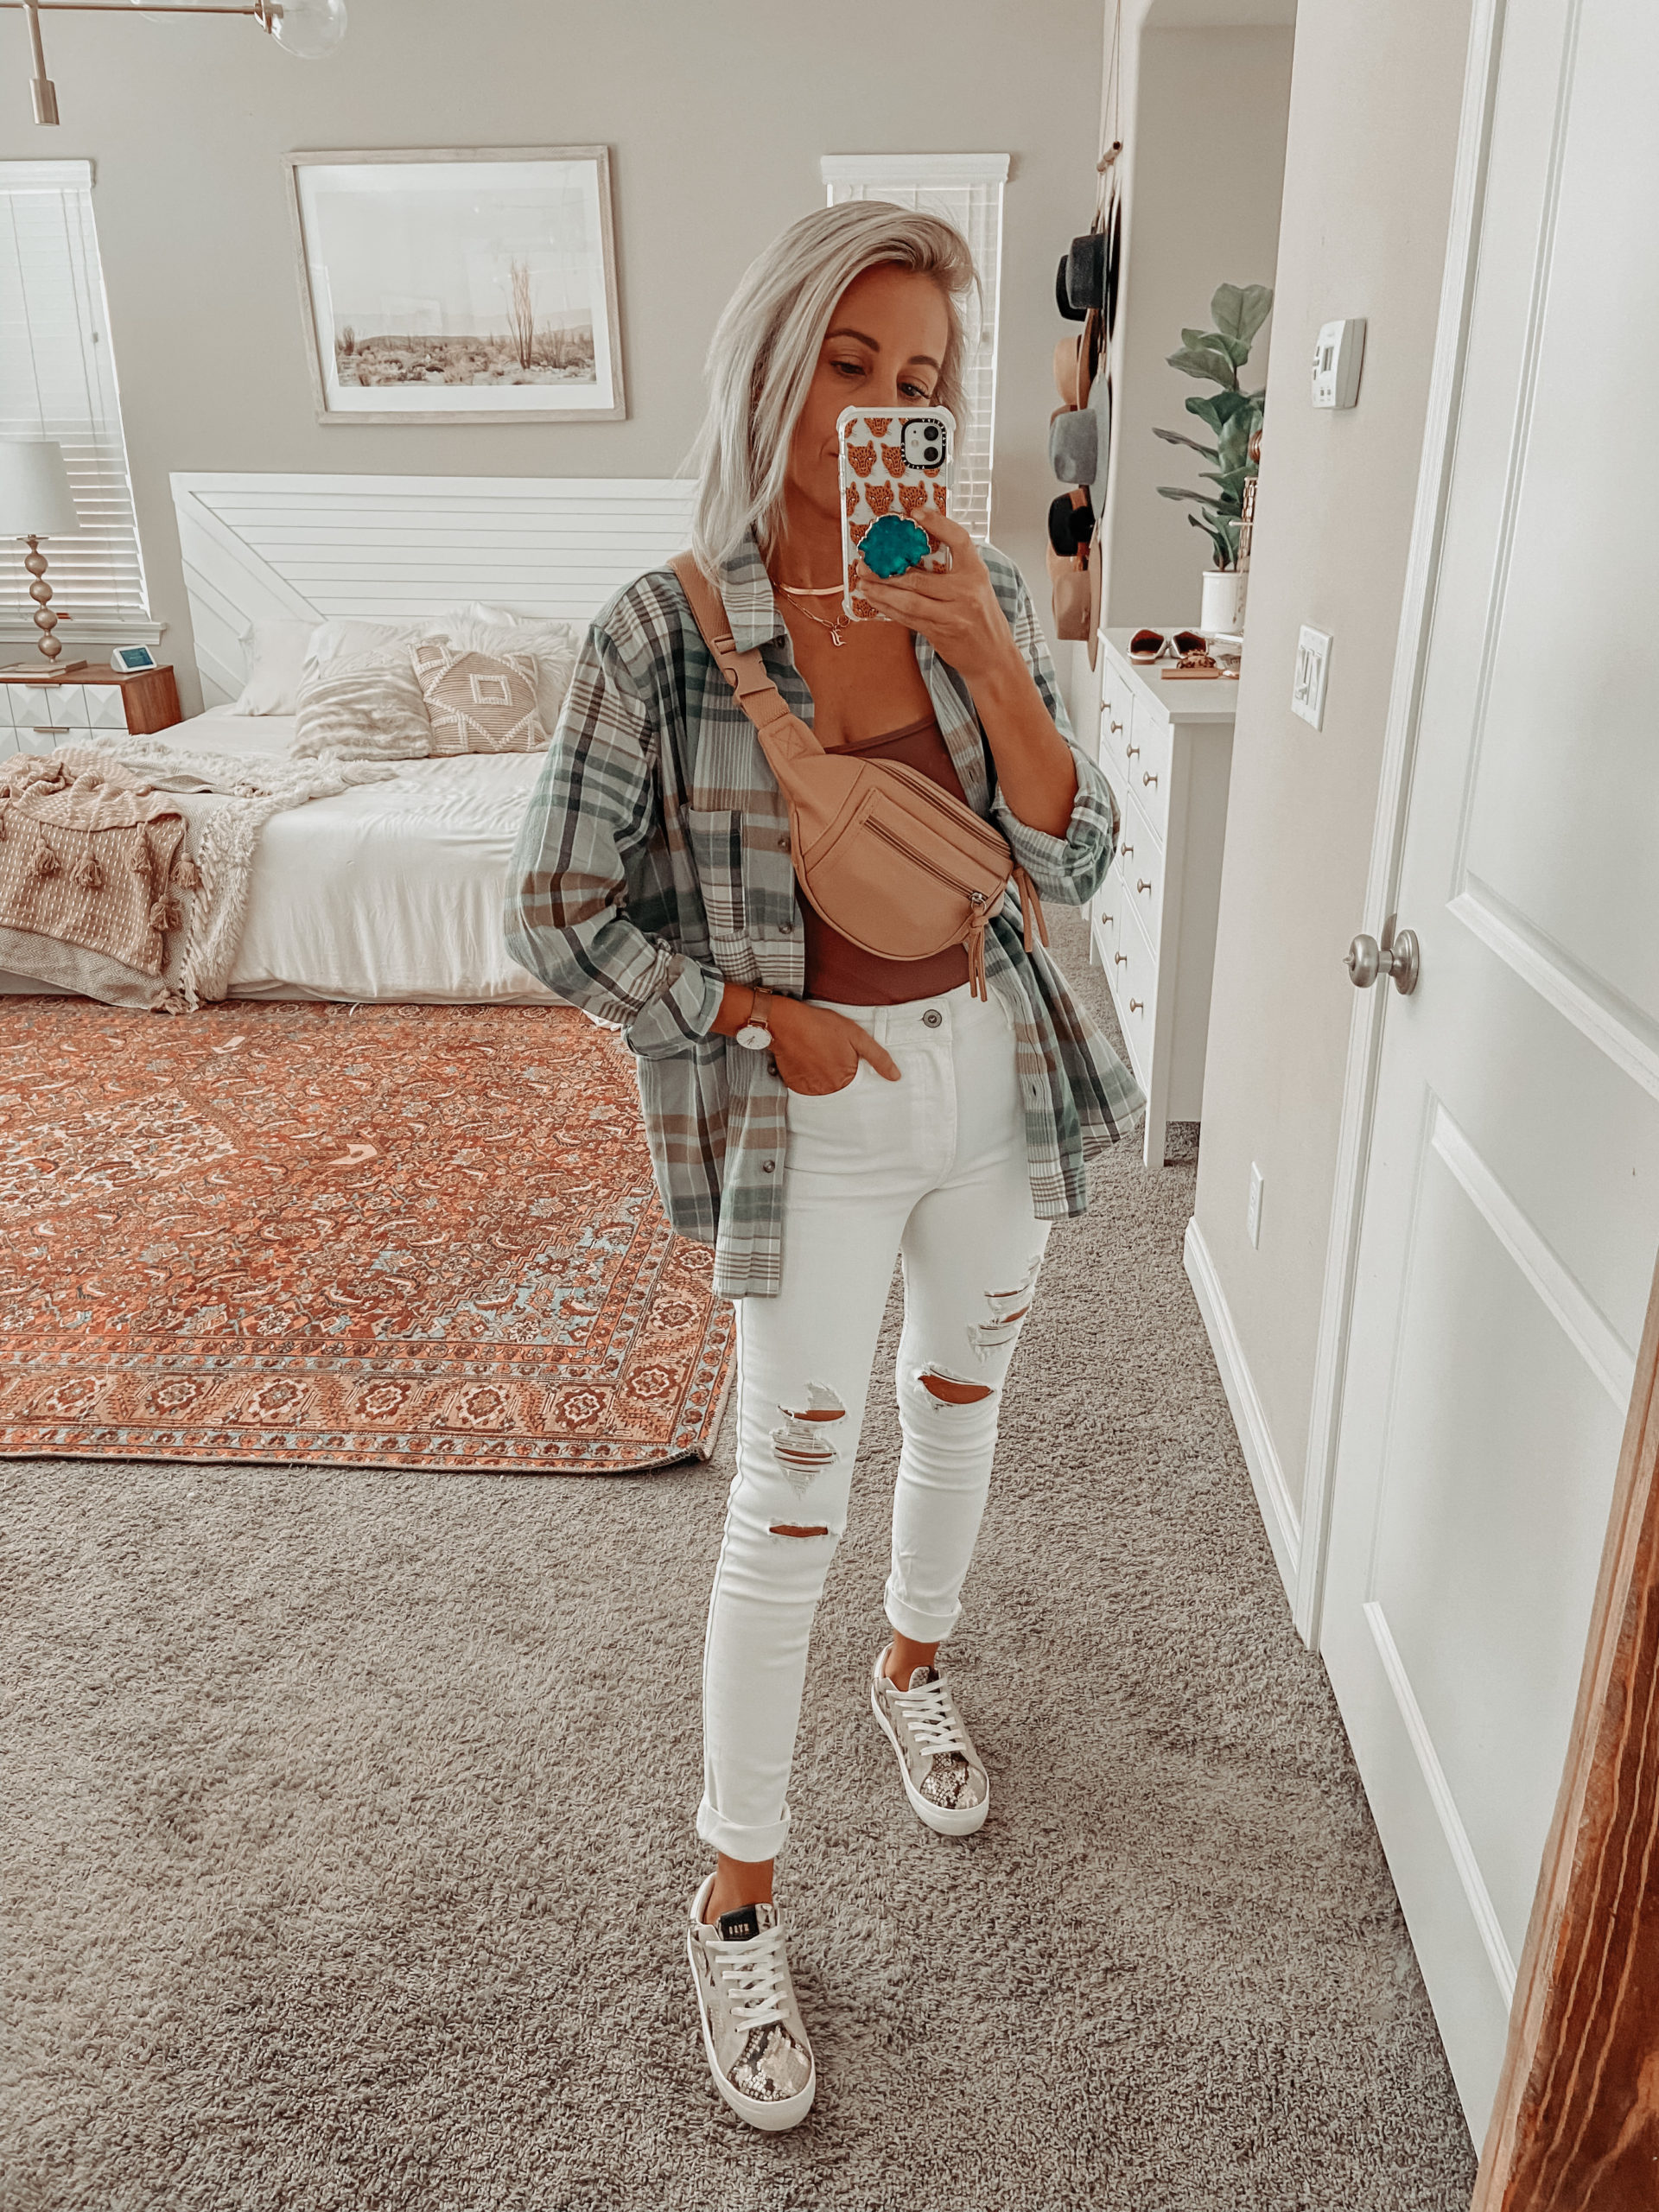 3 WAYS TO STYLE WHITE DENIM FOR FALL- Jaclyn De Leon Style, Yes you can wear white after labor day. White denim with a flannel, sweater or monochromatic look